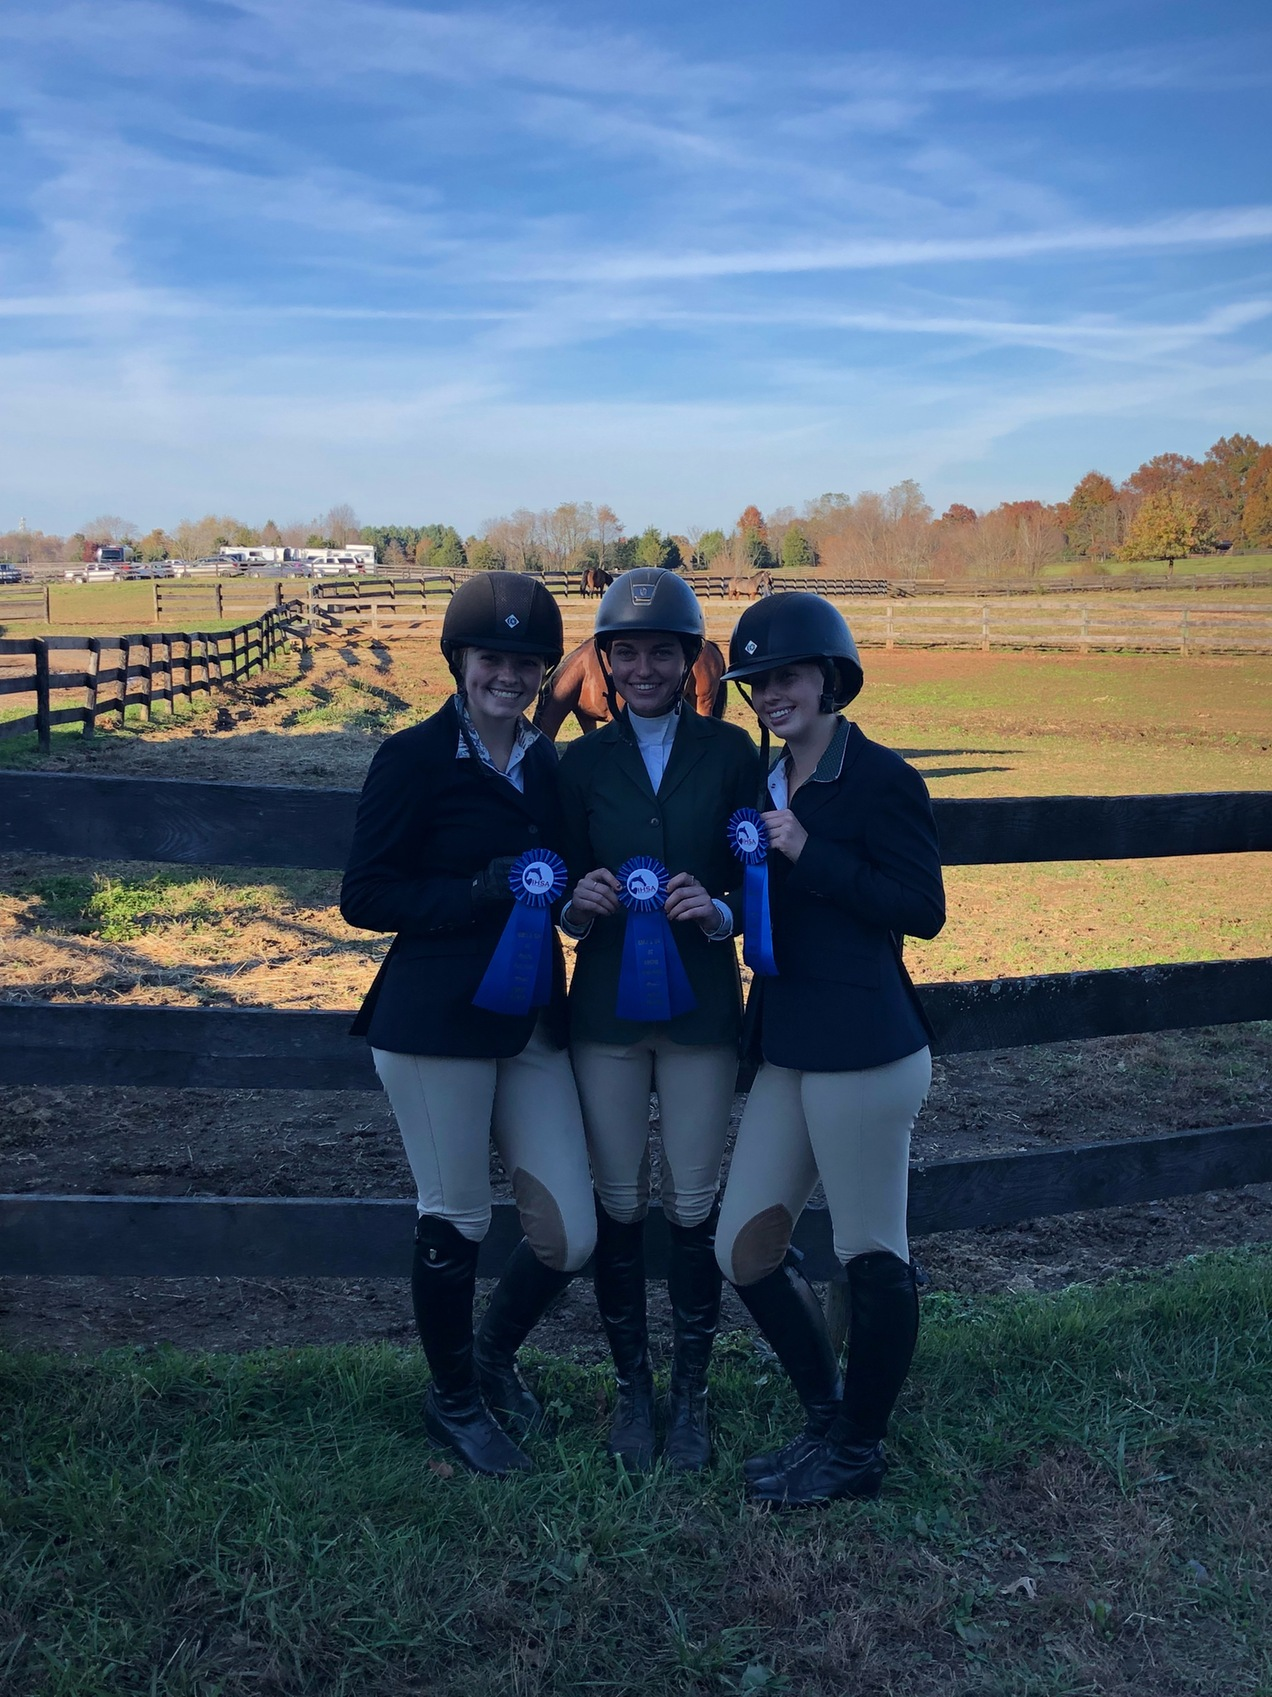 Equestrian Takes Victory at IHSA Show